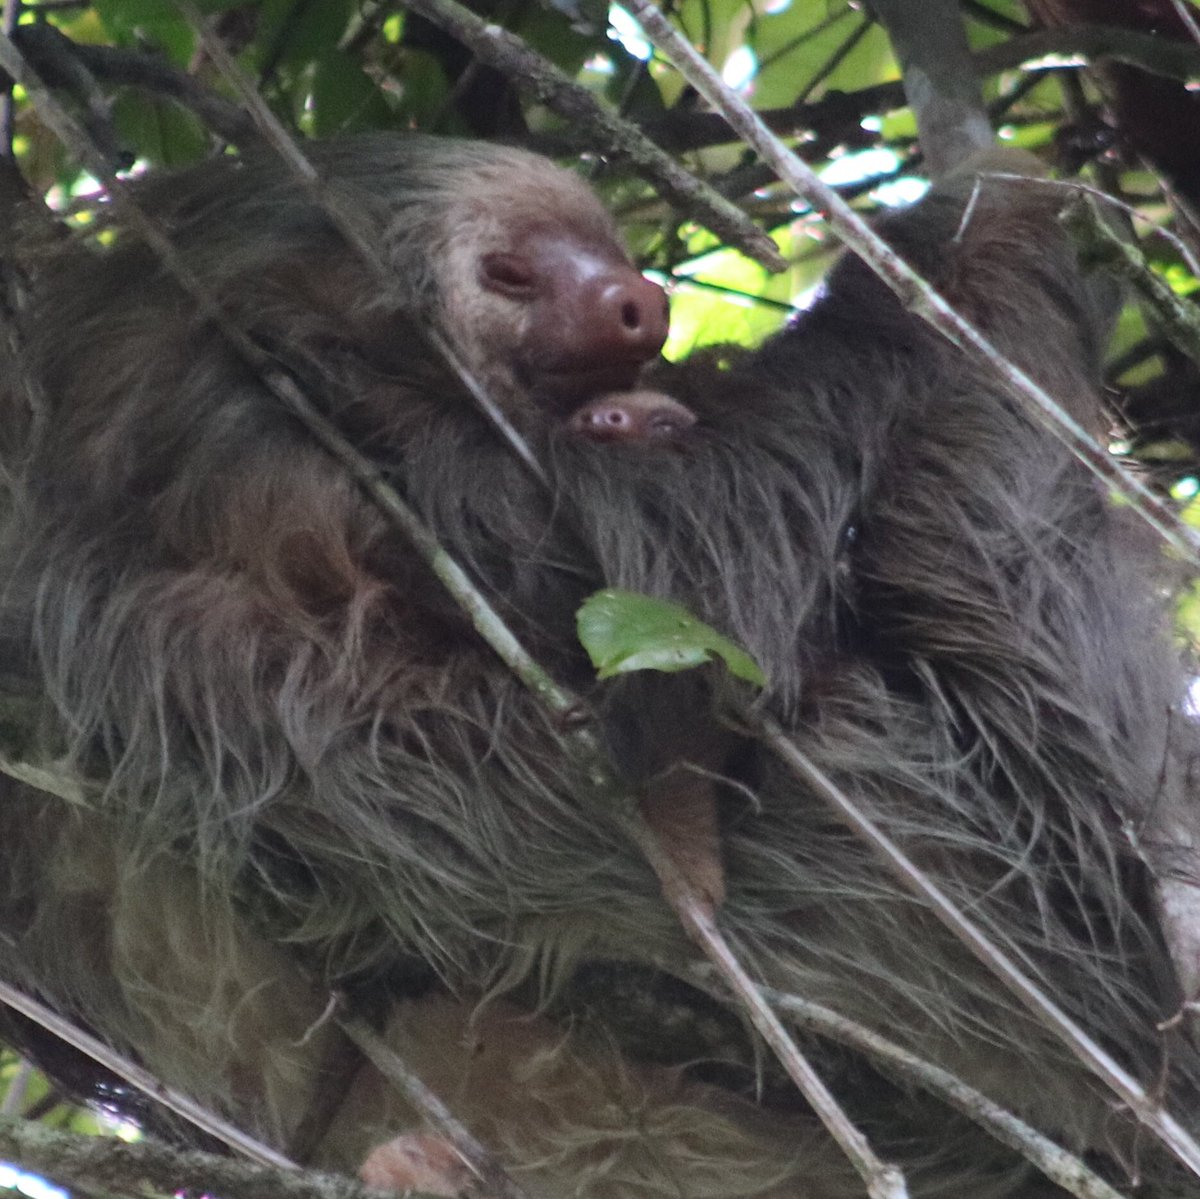 Julia hartley brewer on twitter greetings from the costa rican julia hartley brewer on twitter greetings from the costa rican rainforest where this sloth her tiny baby and i wish you all a very merry christmas kristyandbryce Gallery